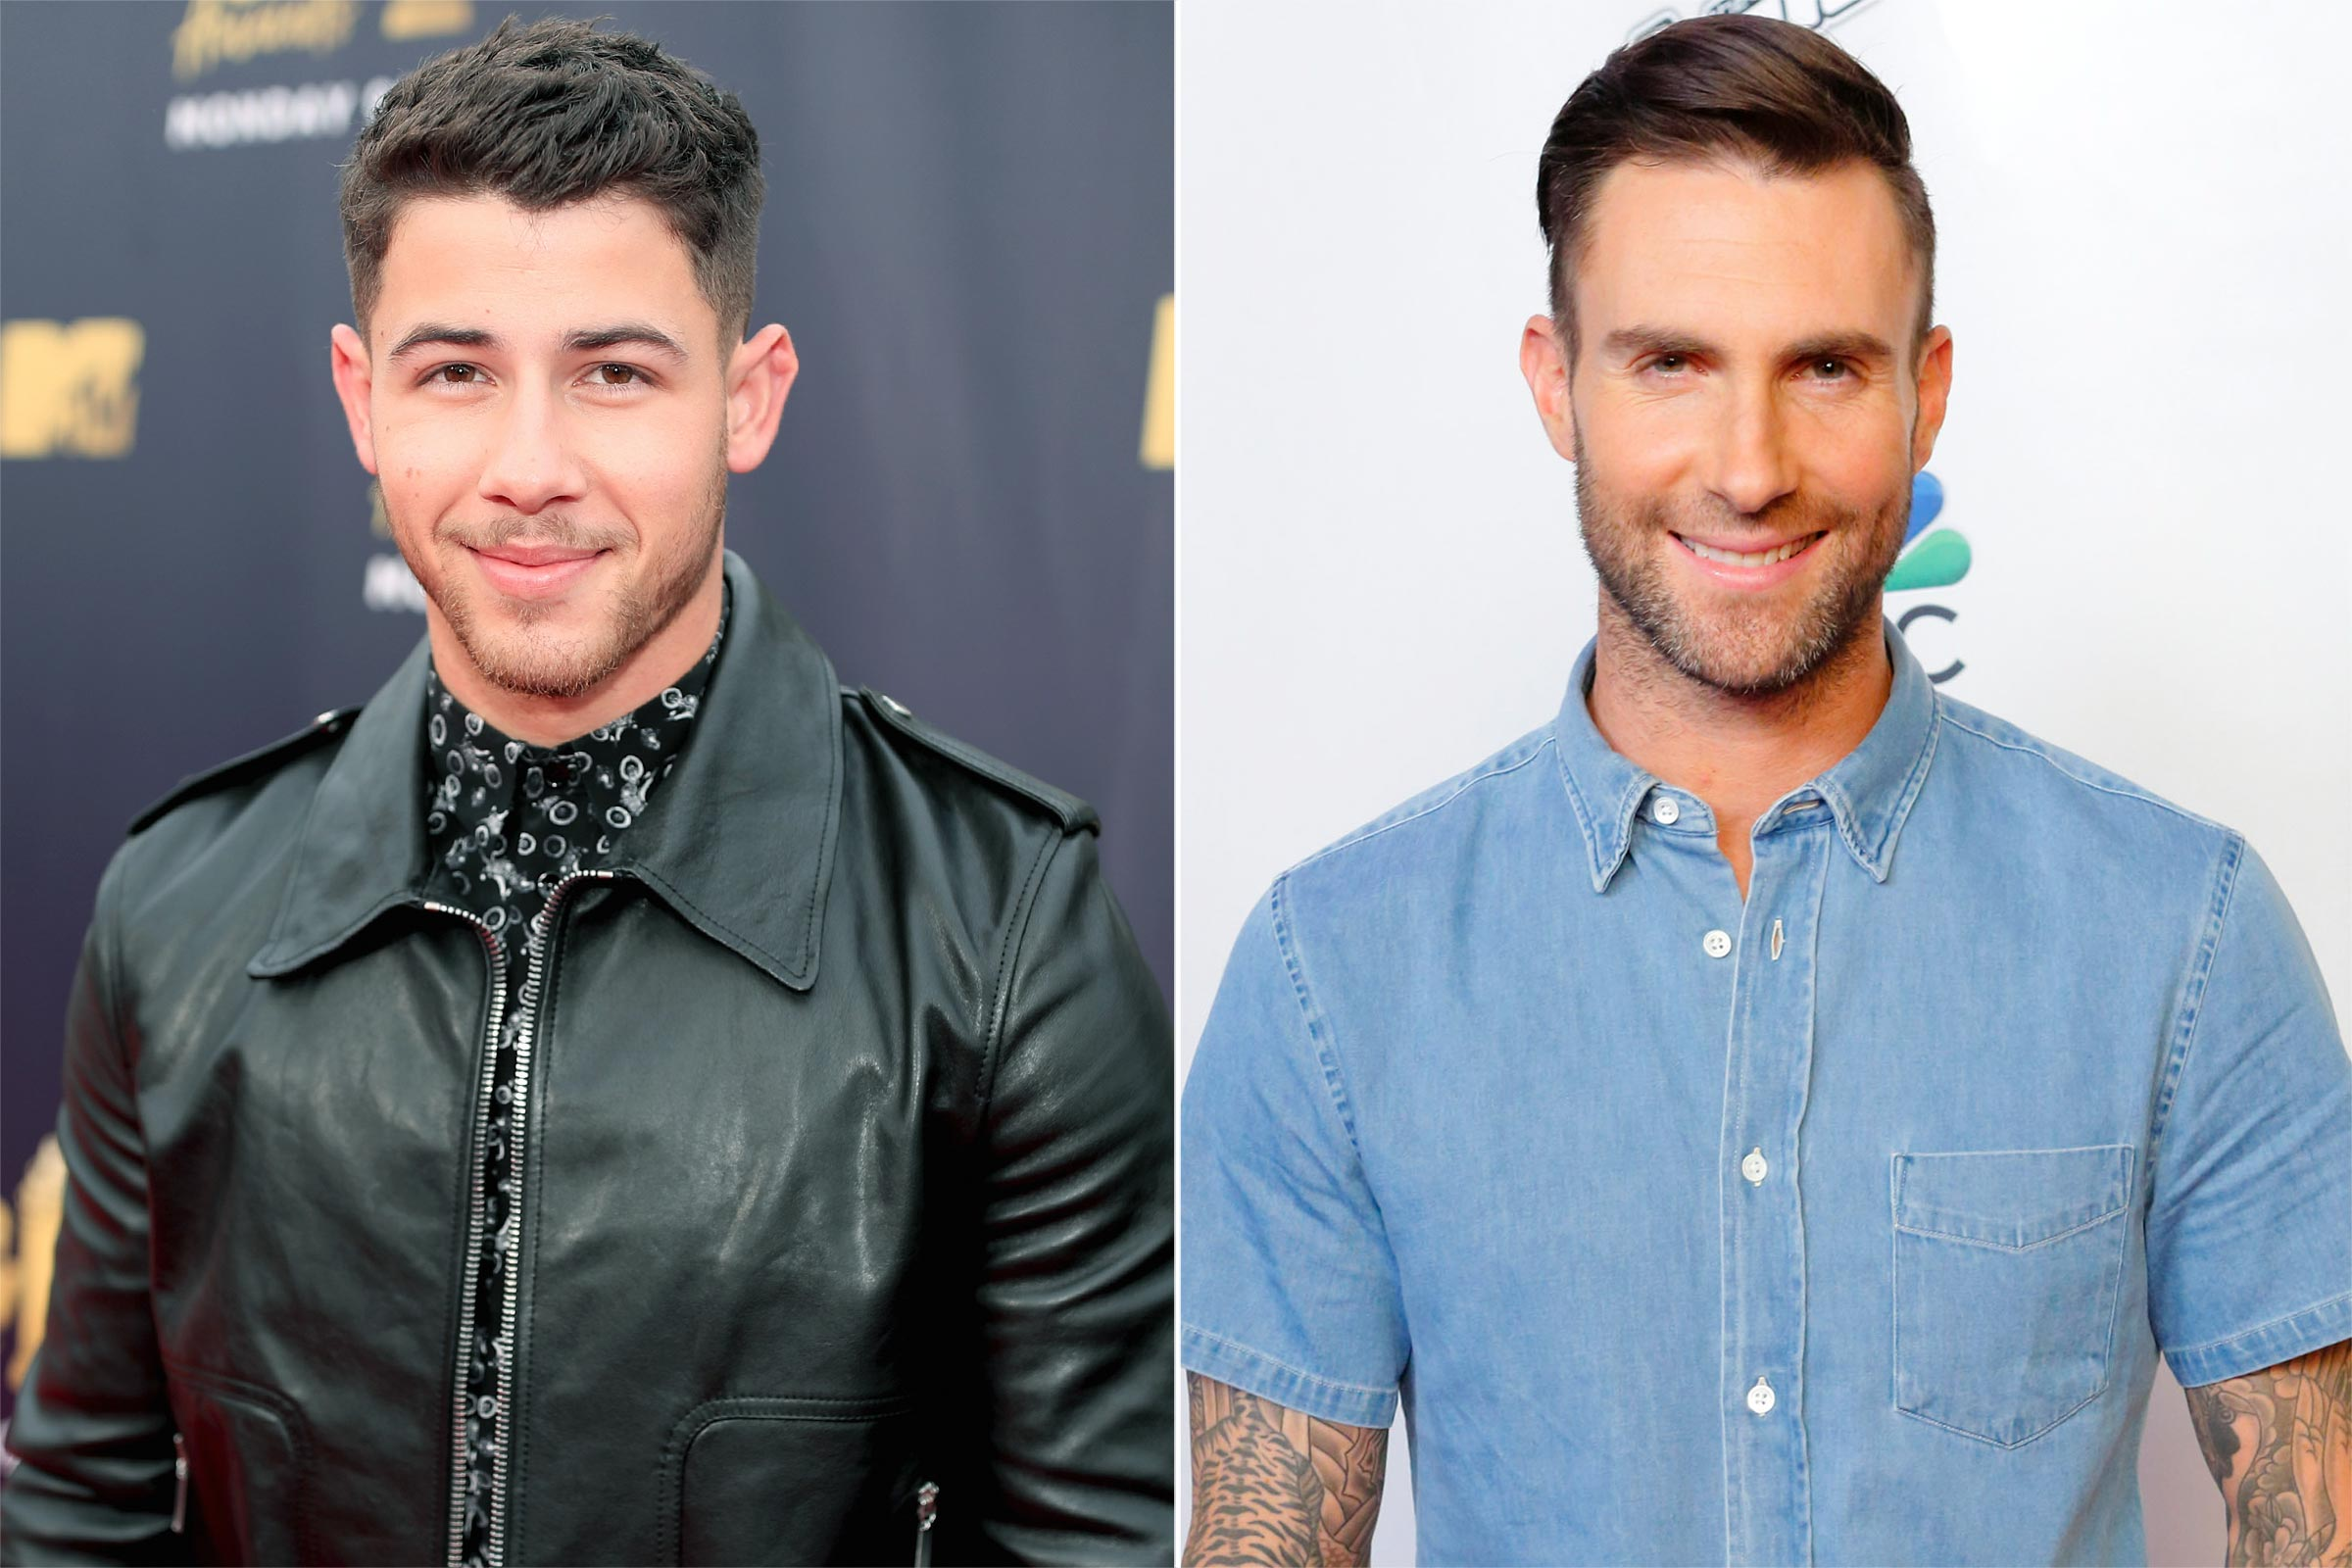 Adam Levine Trolled Nick Jonas for His Spinach-Filled Teeth Immediately After Grammys Performance